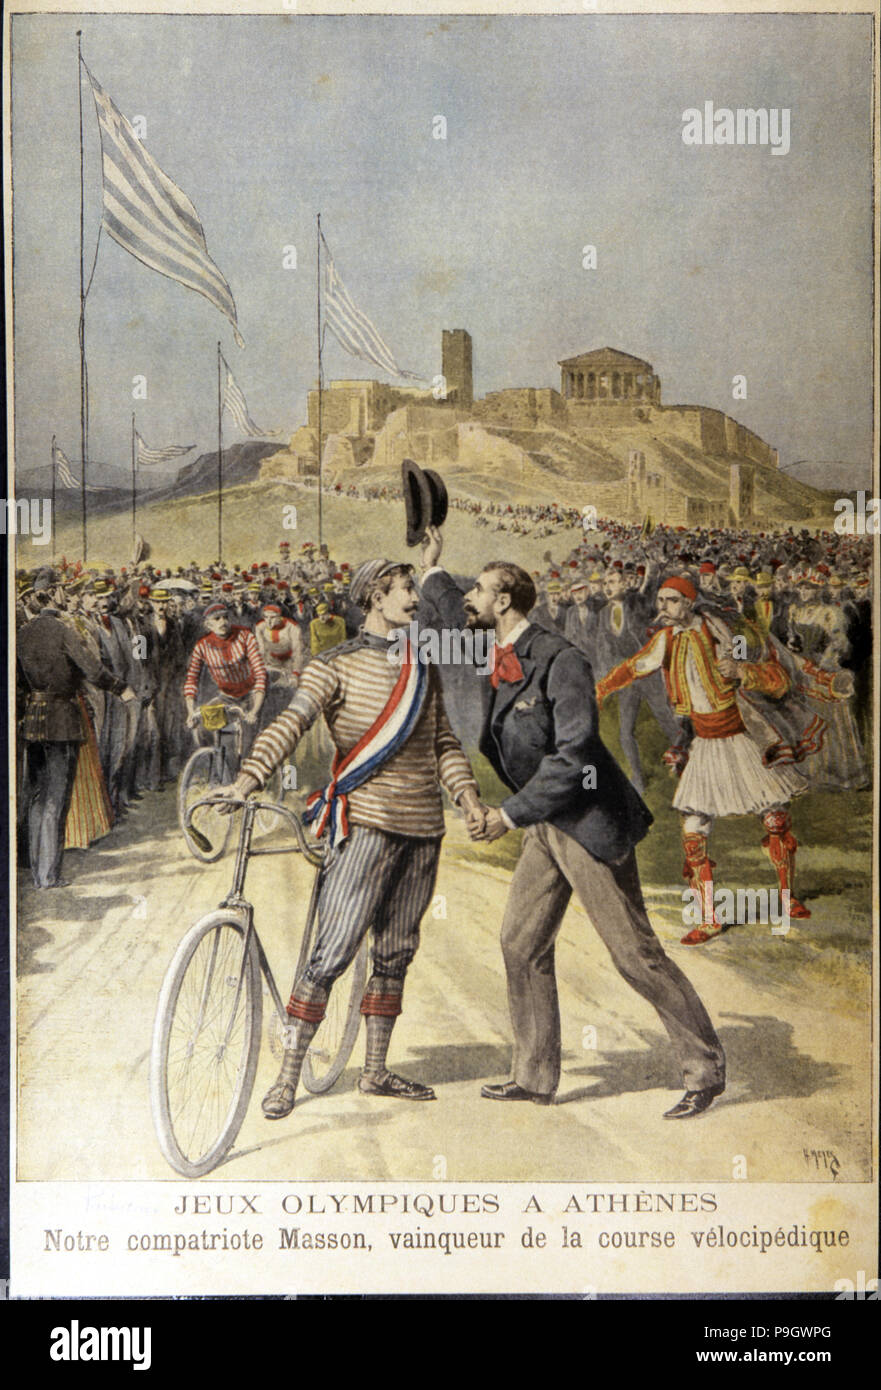 First Olympic Games of the modern era in Athens in 1896, the French Masson was the winner of the cycling race. Illustration from 'Le Petit Journal'. - Stock Image